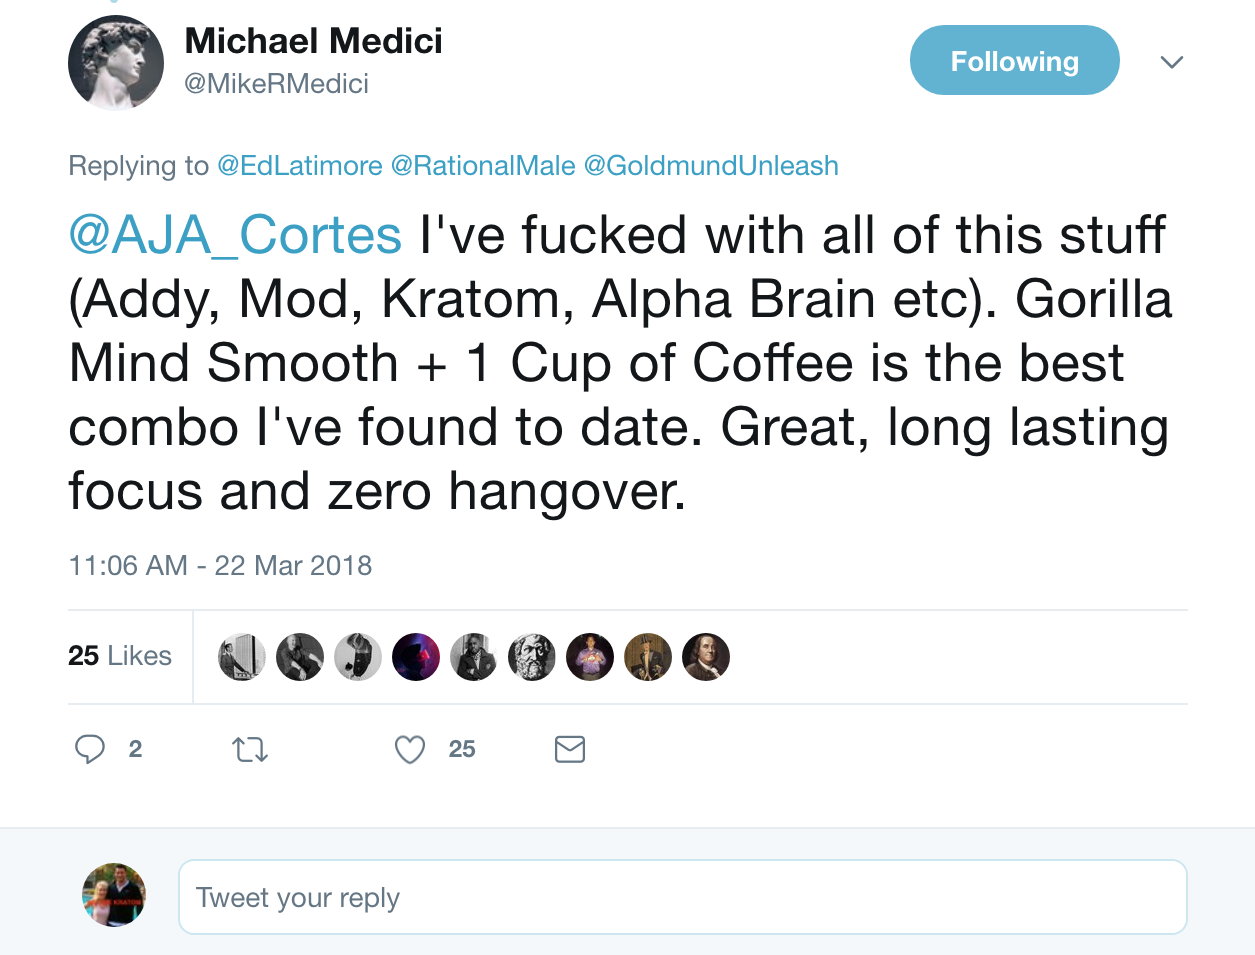 Michael Mecidi Gorilla Mind Review